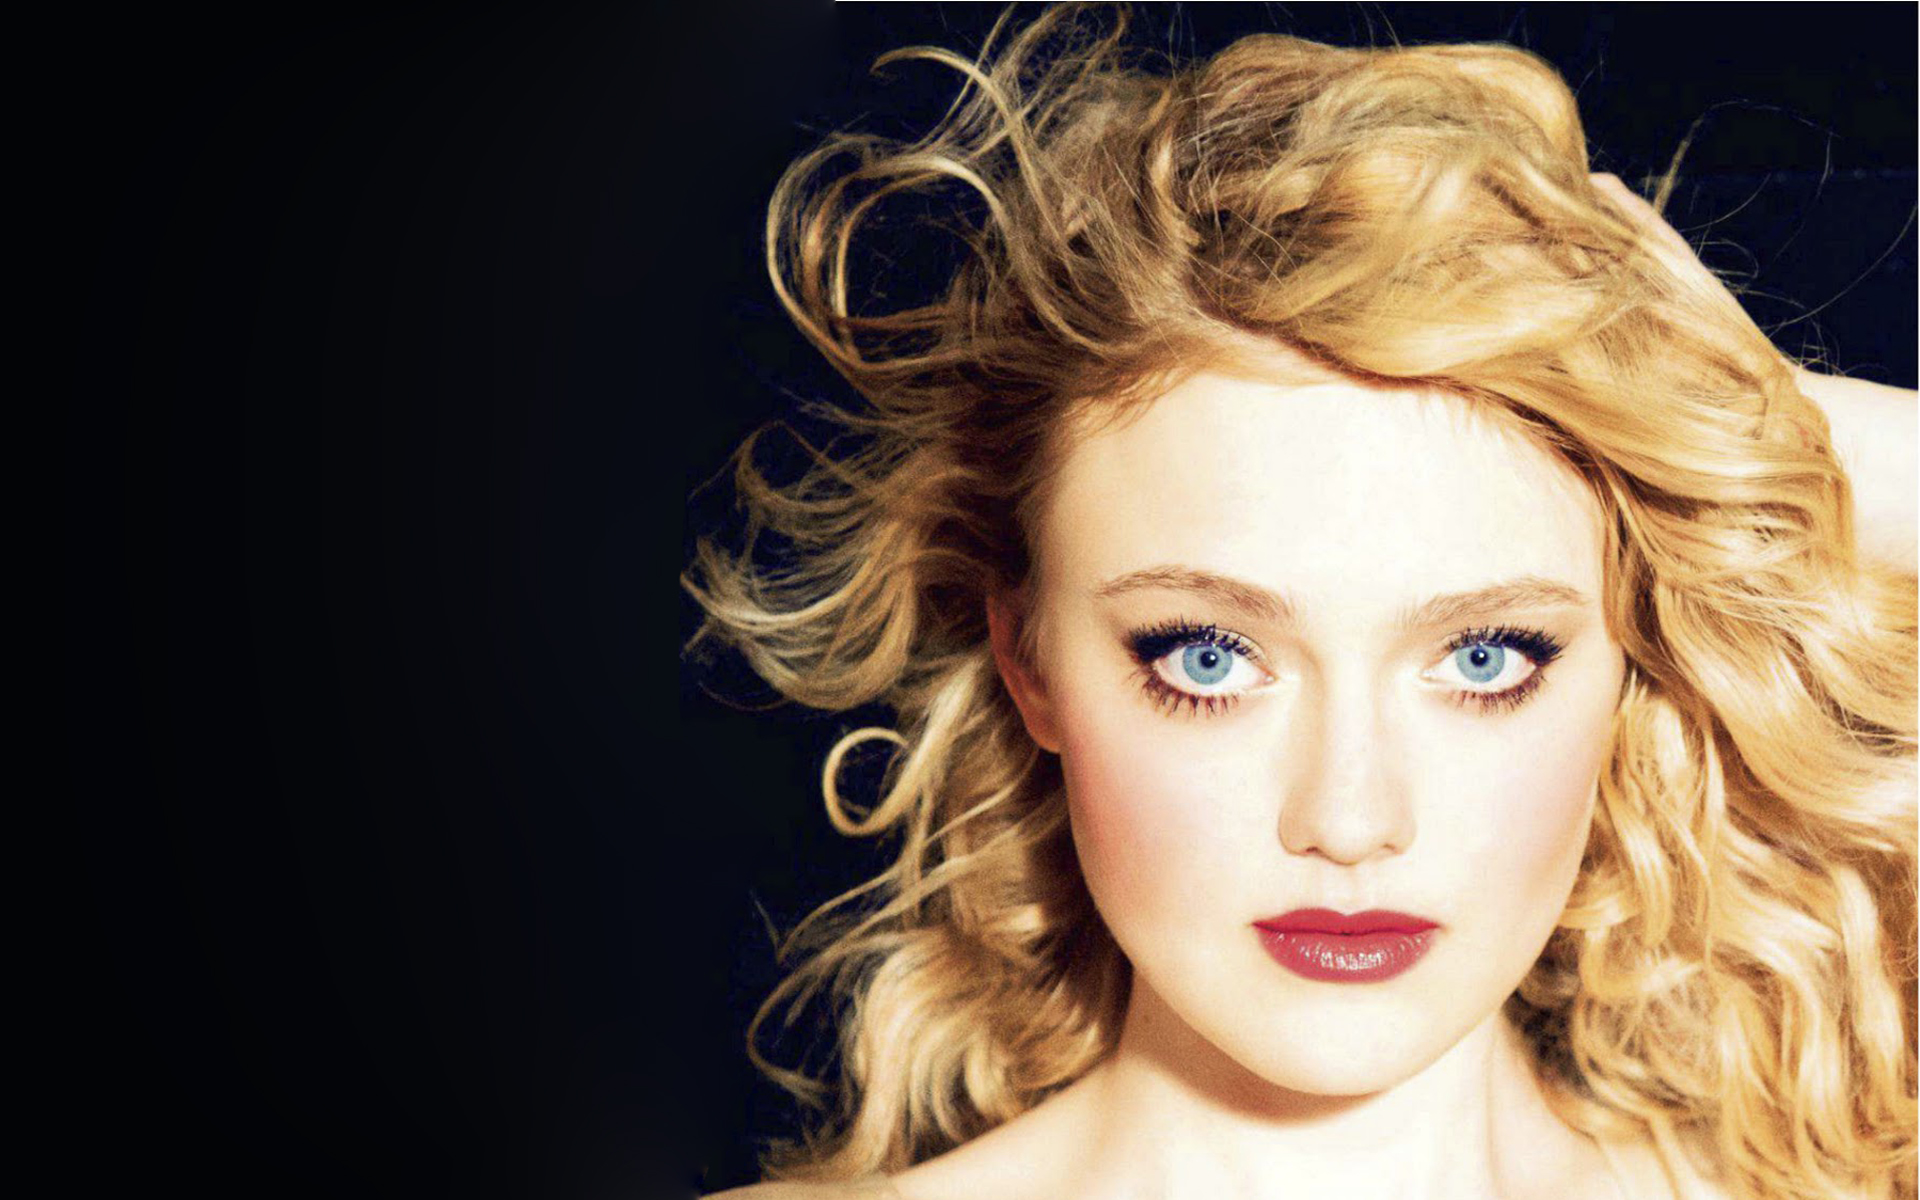 Dakota Fanning Wallpaper HD-2